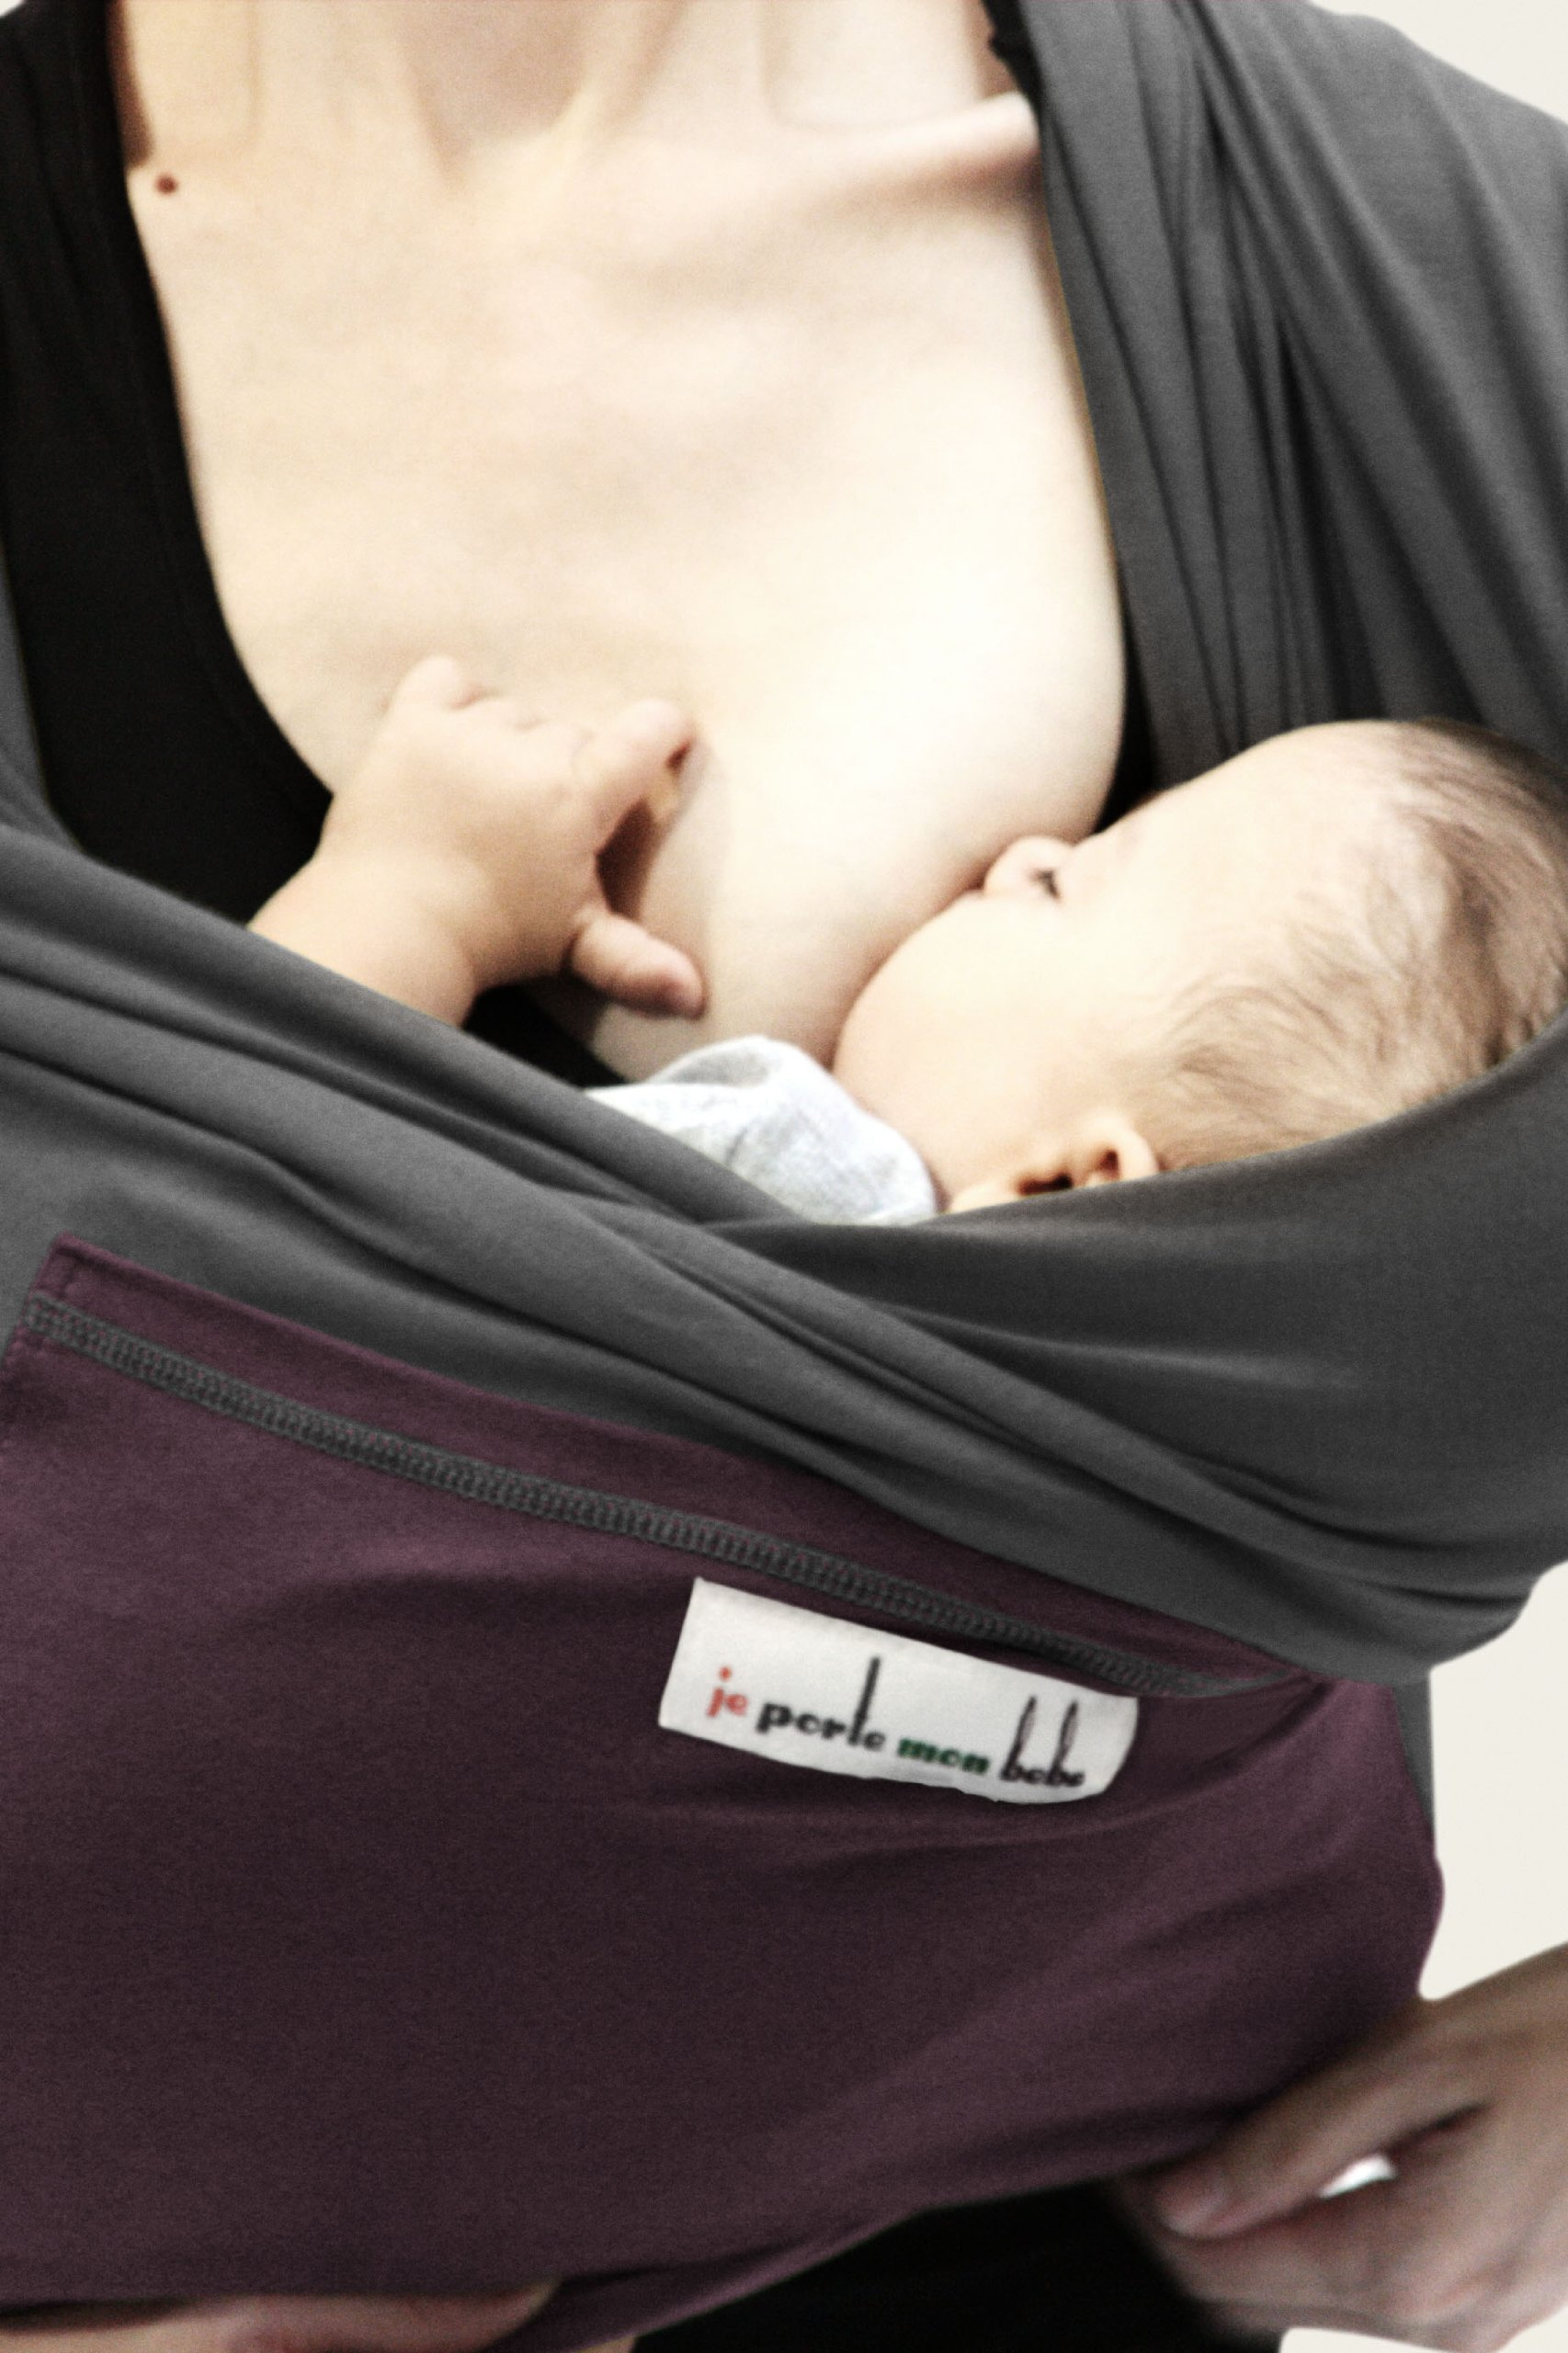 Je Porte Mon Bébé L'Originale Baby Sling Je Porte Mon Bébé High Quality Elastic Baby Carrier Dense, elastic and breathable material Great support, fits your baby's body like a second skin. 35